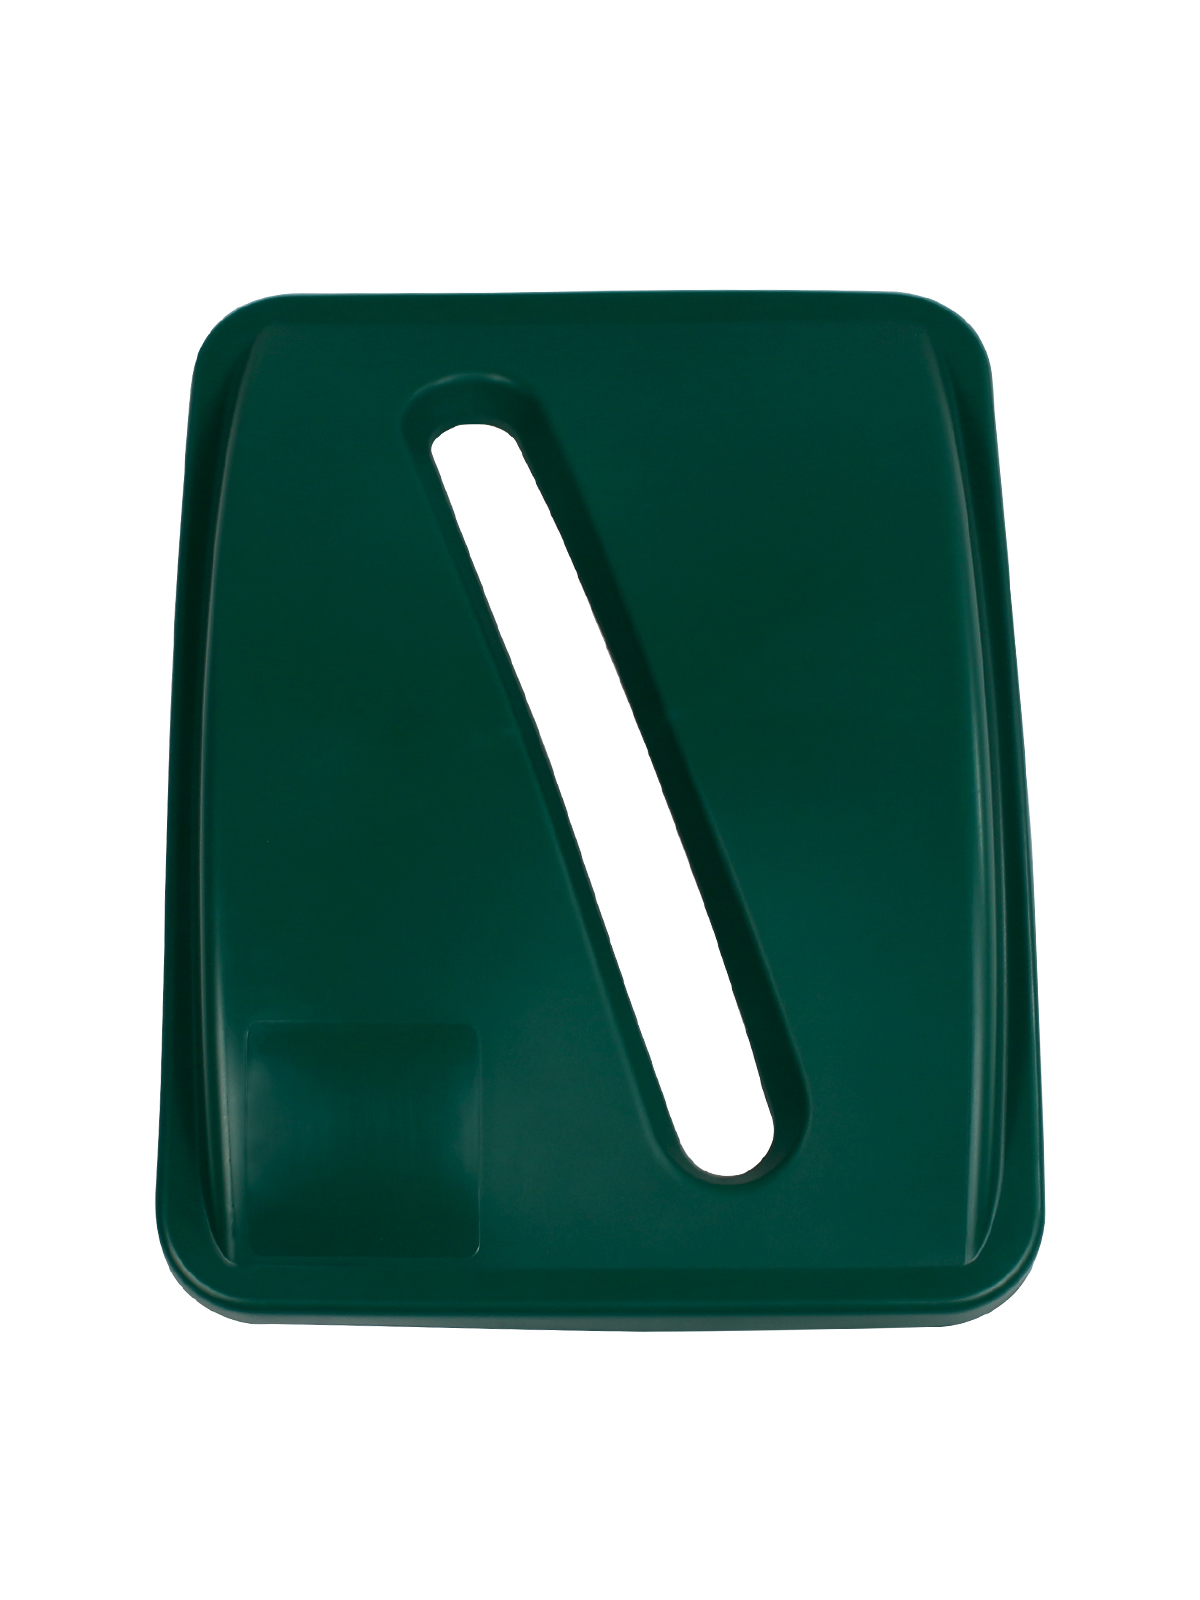 WASTE WATCHER® XL - LID - SLOT OPENING - DARK GREEN title=